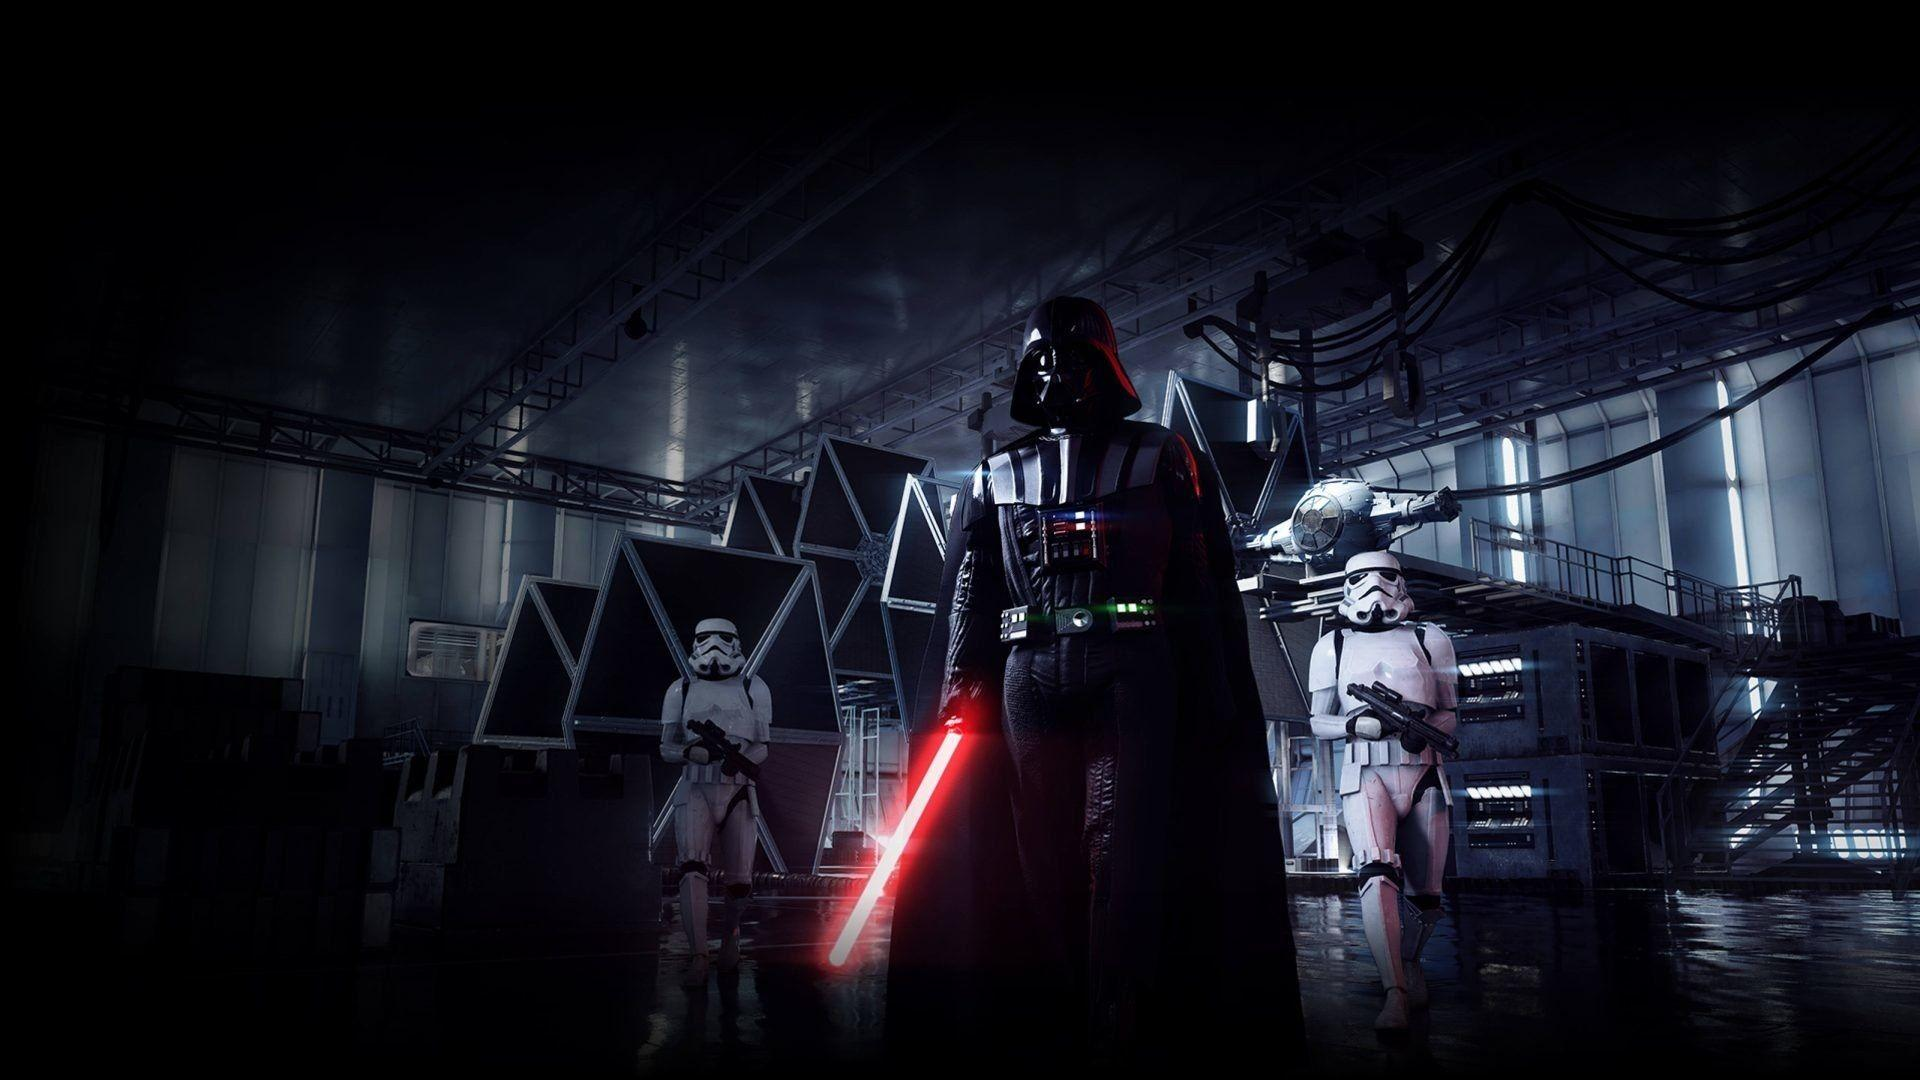 Save Star Wars Battlefront II HD Wallpapers | Playstation, Xbox ...